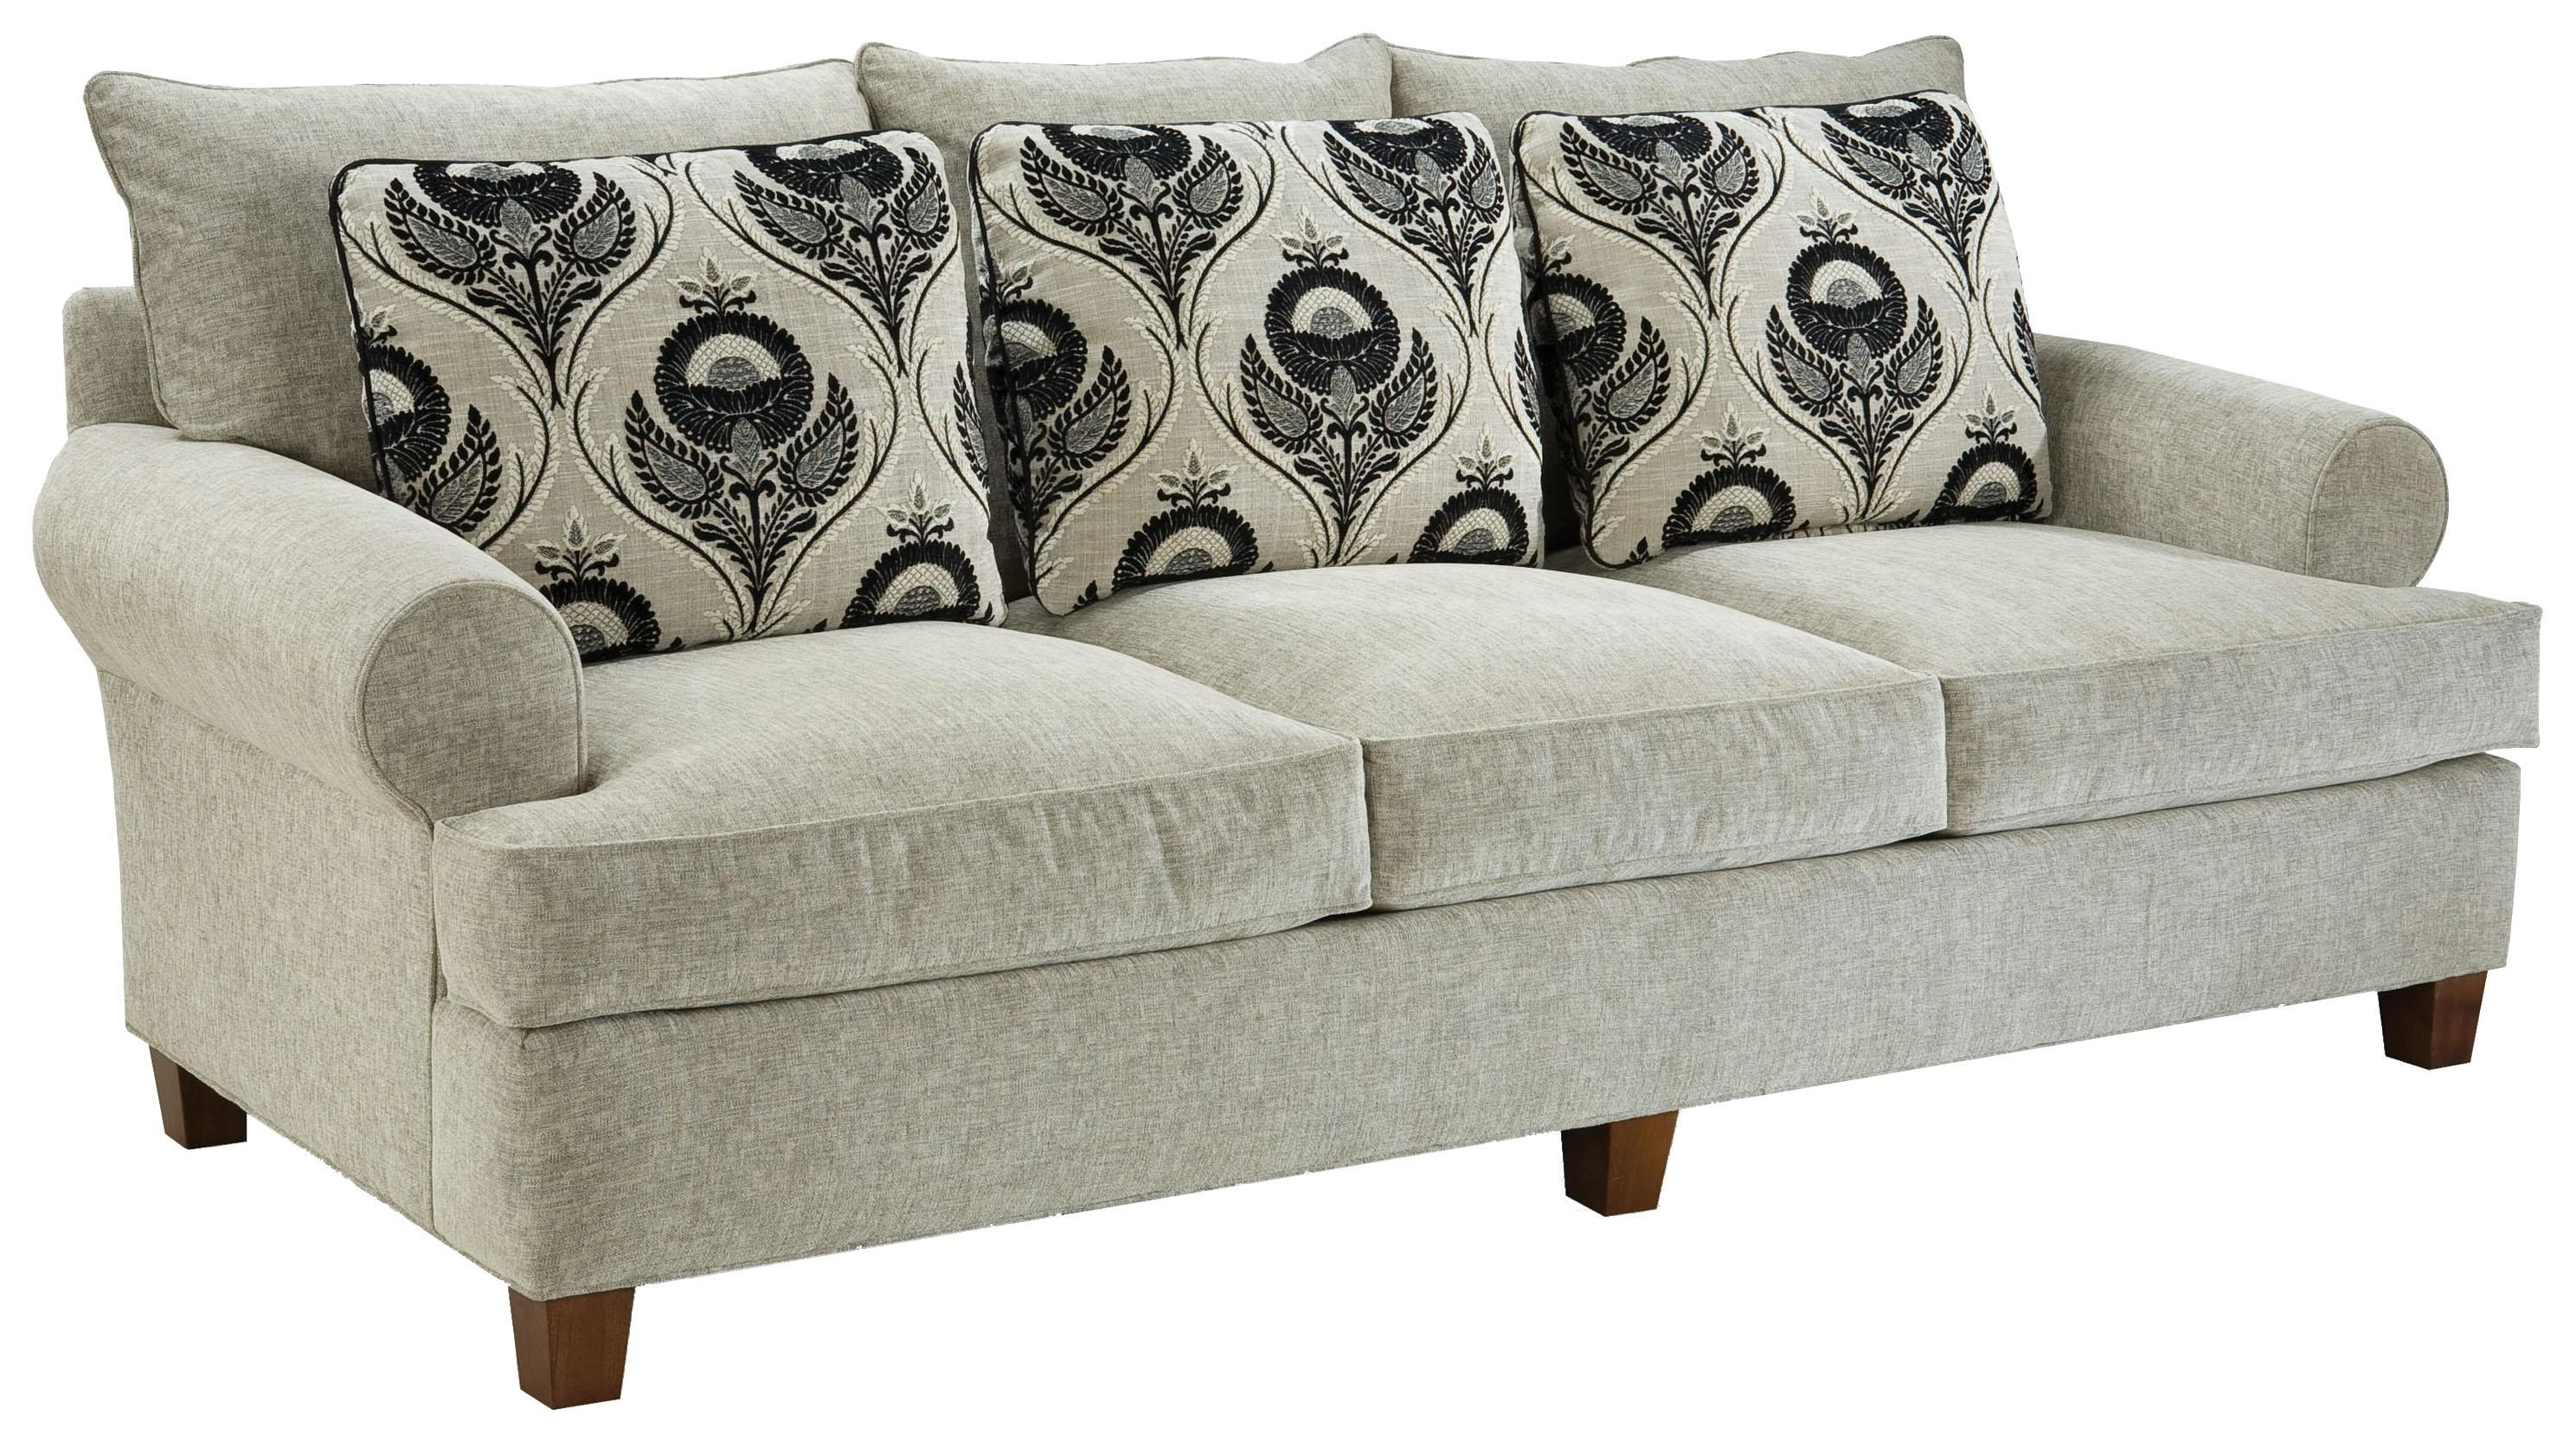 Fairfield 3778 Contemporary Sofa   Jacksonville Furniture Mart   Sofa